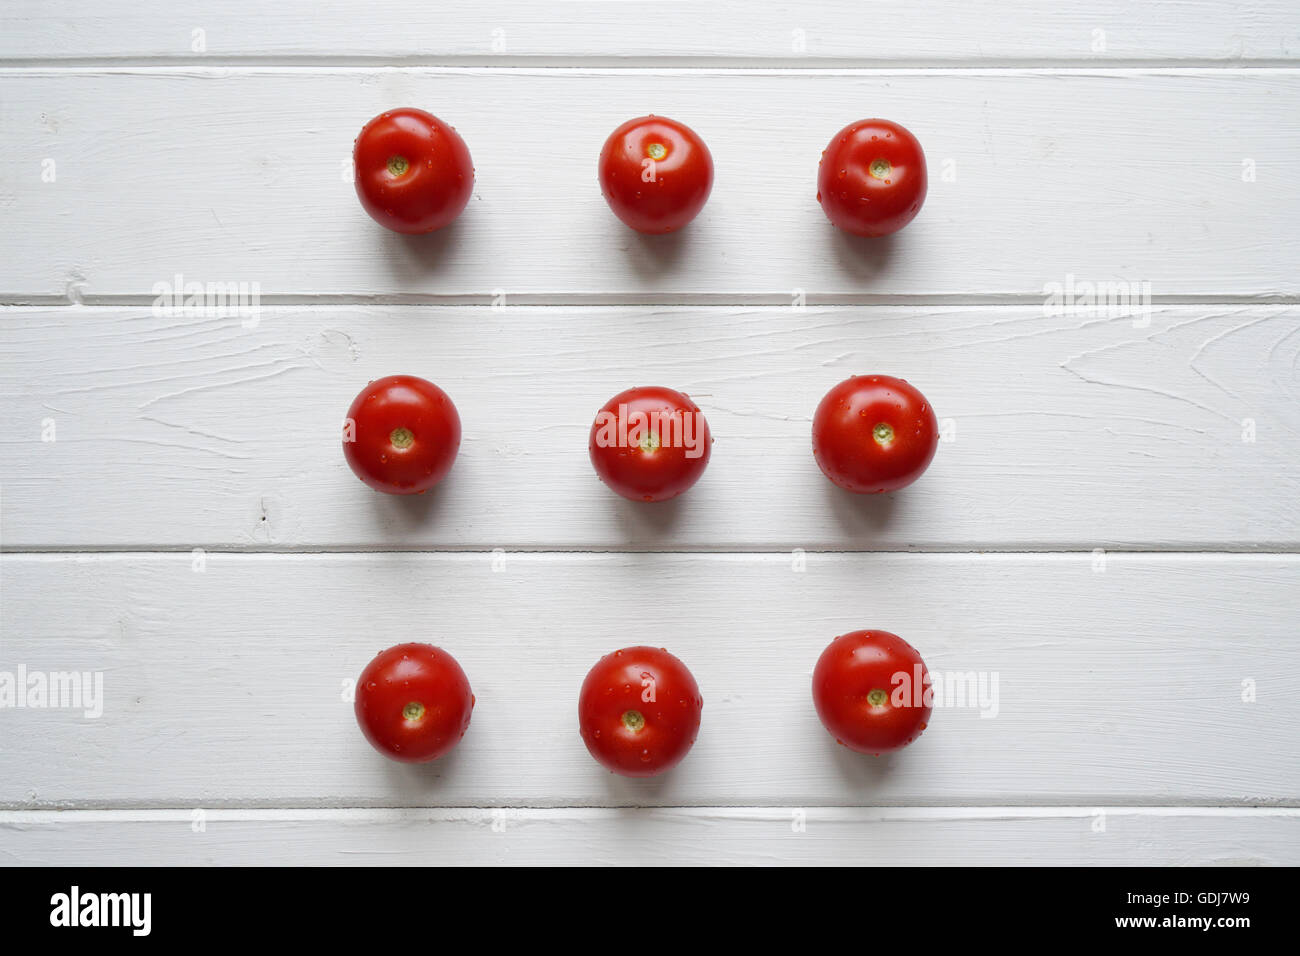 cherry tomato flat lay - Stock Image